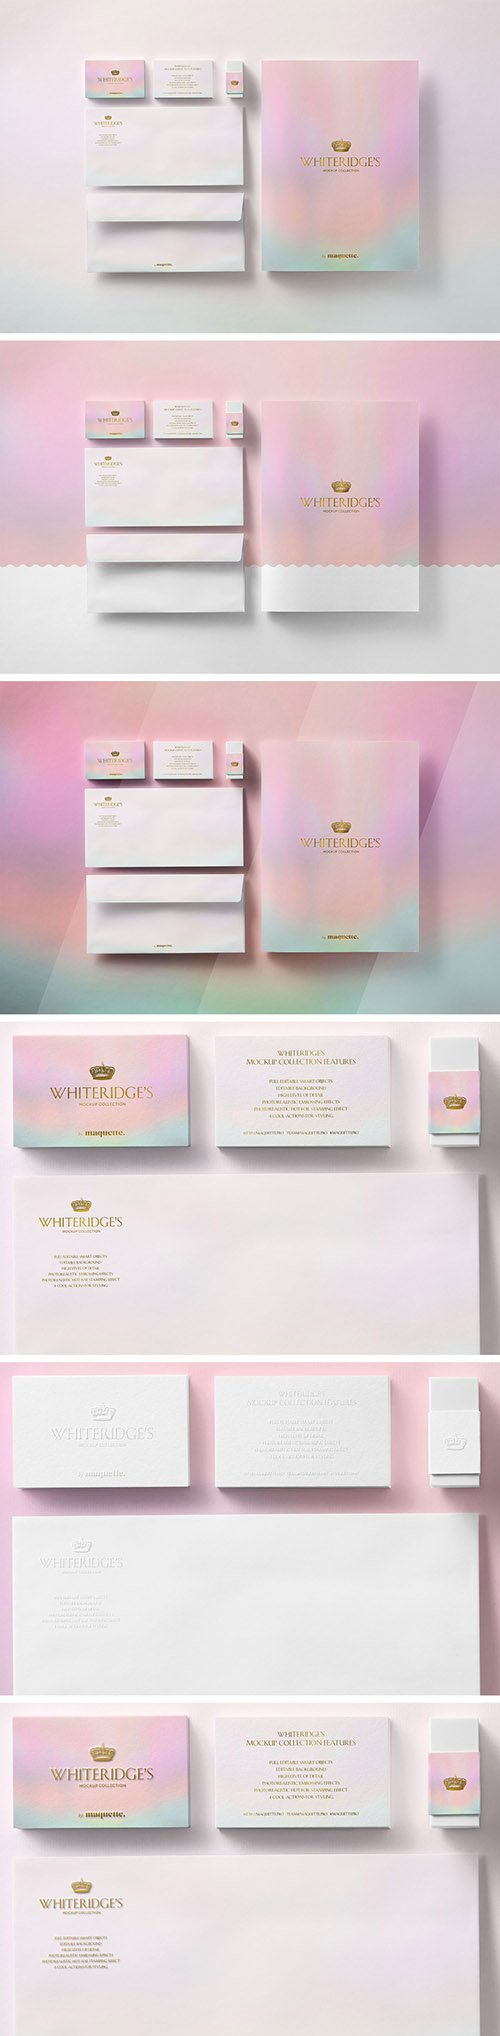 Luxury Gold-Embossed Corporate Stationery Mockup 12 130437267 PSDT